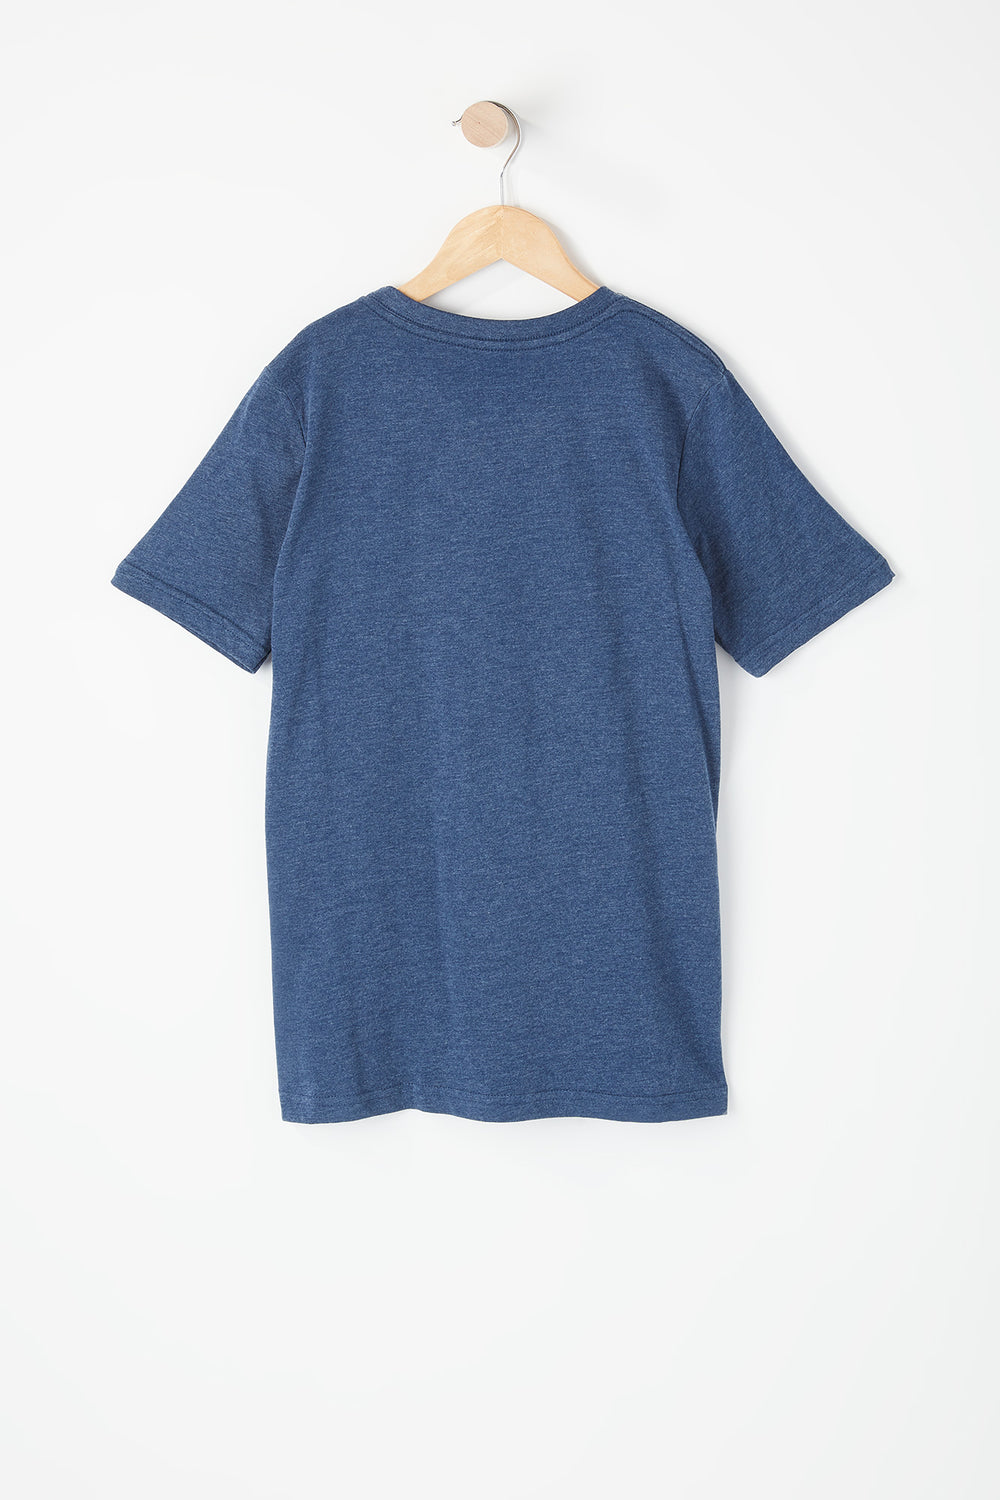 T-Shirt Junior West49 Head in the Clouds Bleu denim